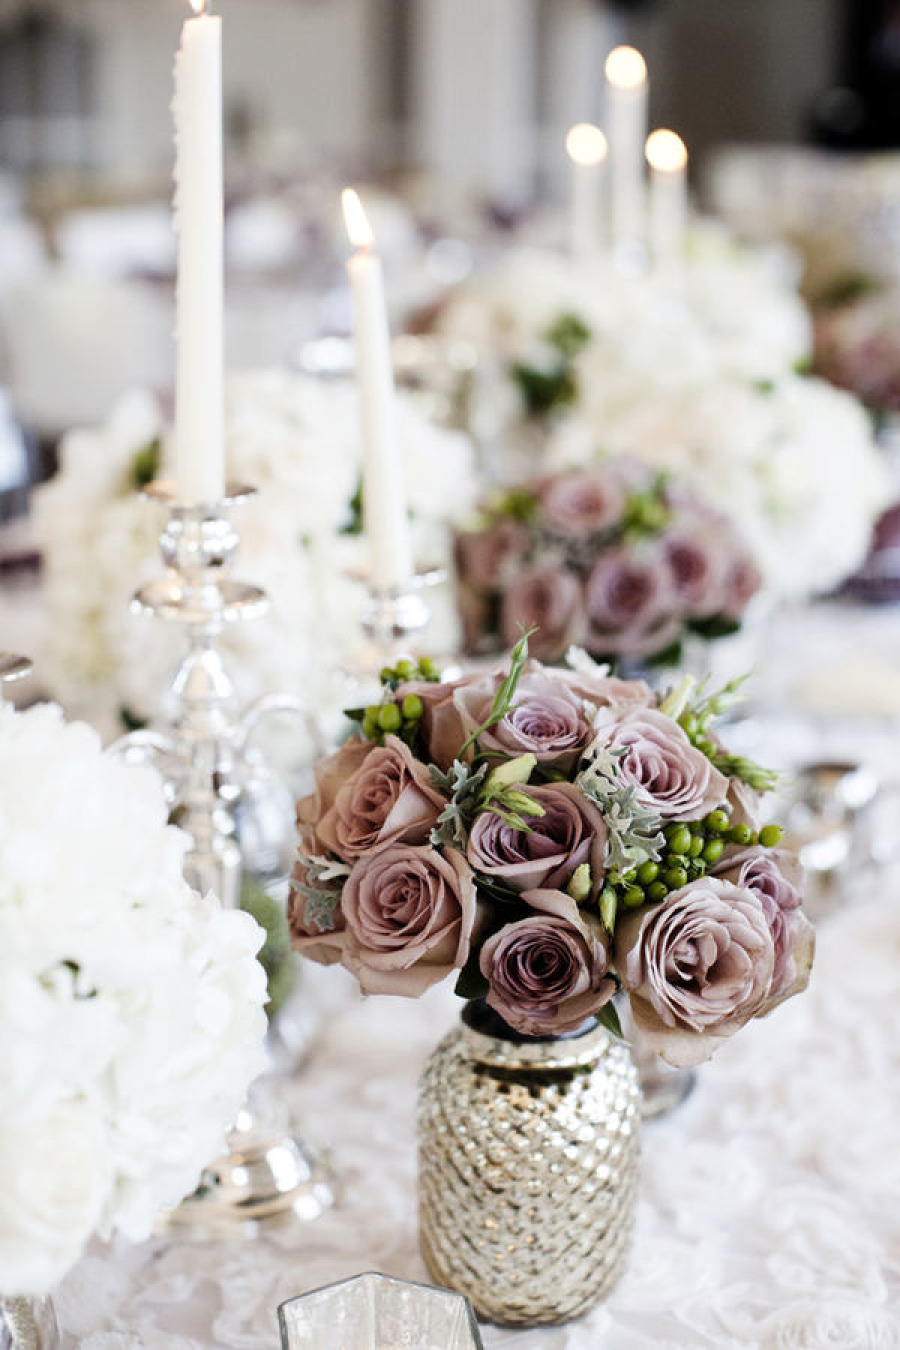 29 jaw droppingly beautiful wedding centerpieces modwedding wedding centerpieces 27 01172014 junglespirit Choice Image